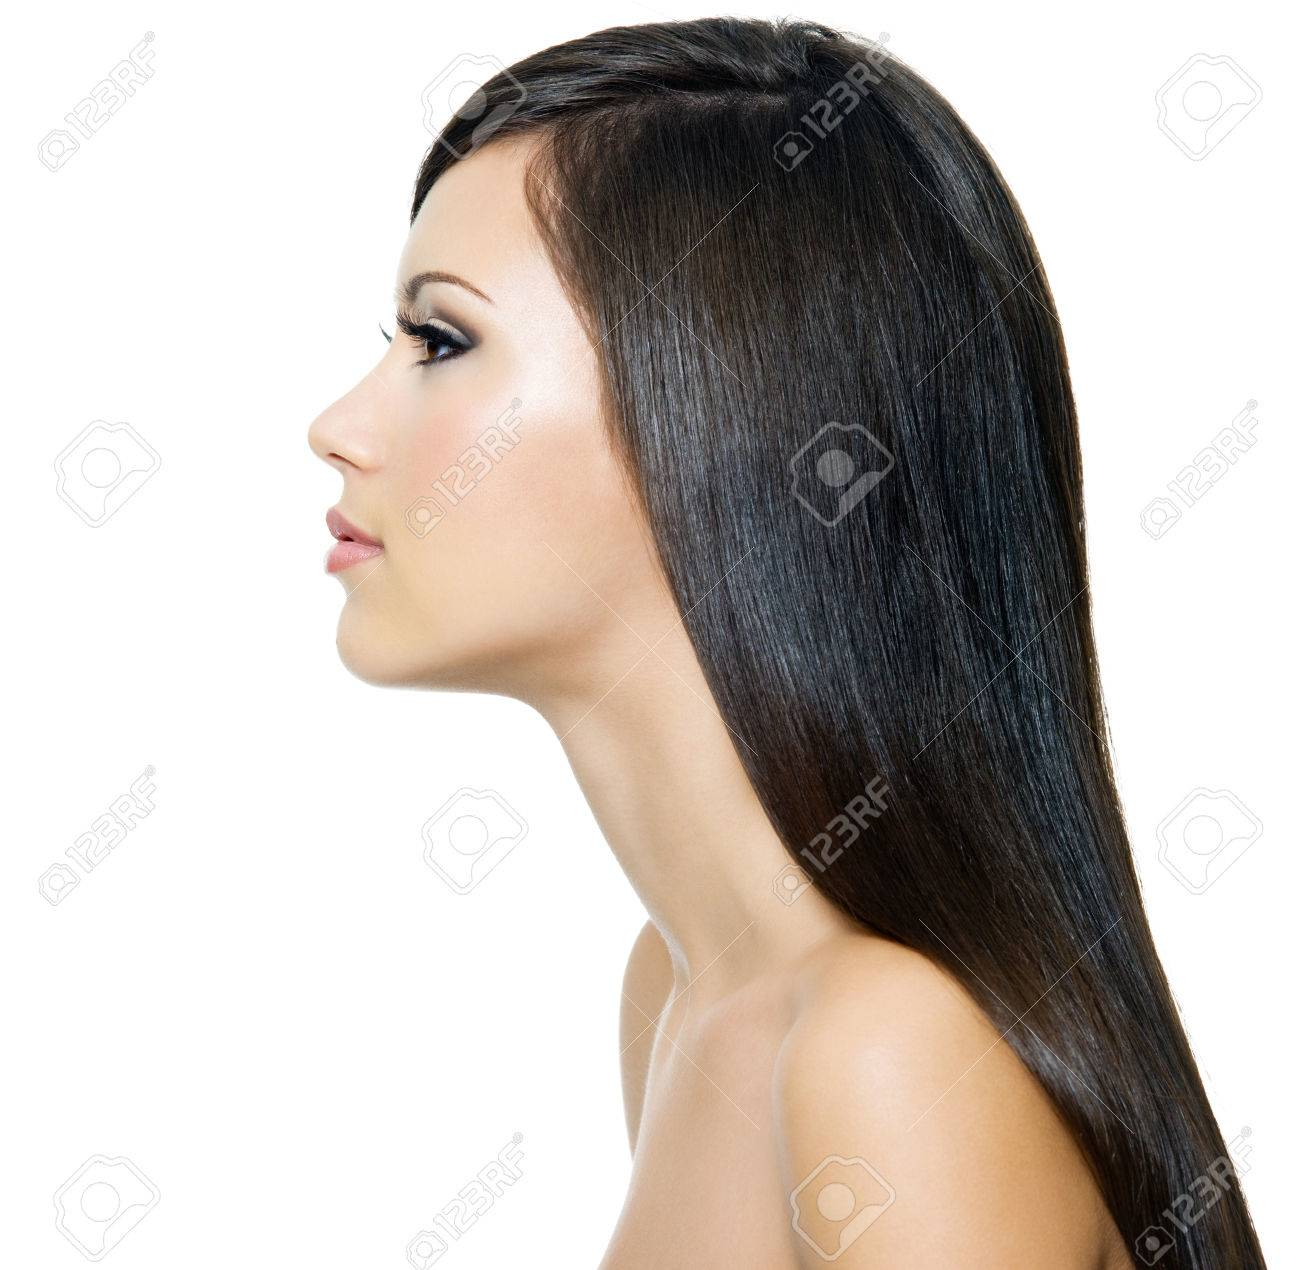 Beautiful woman with long straight brown hai,  isolated on white background. Profile portrait. Stock Photo - 53558593